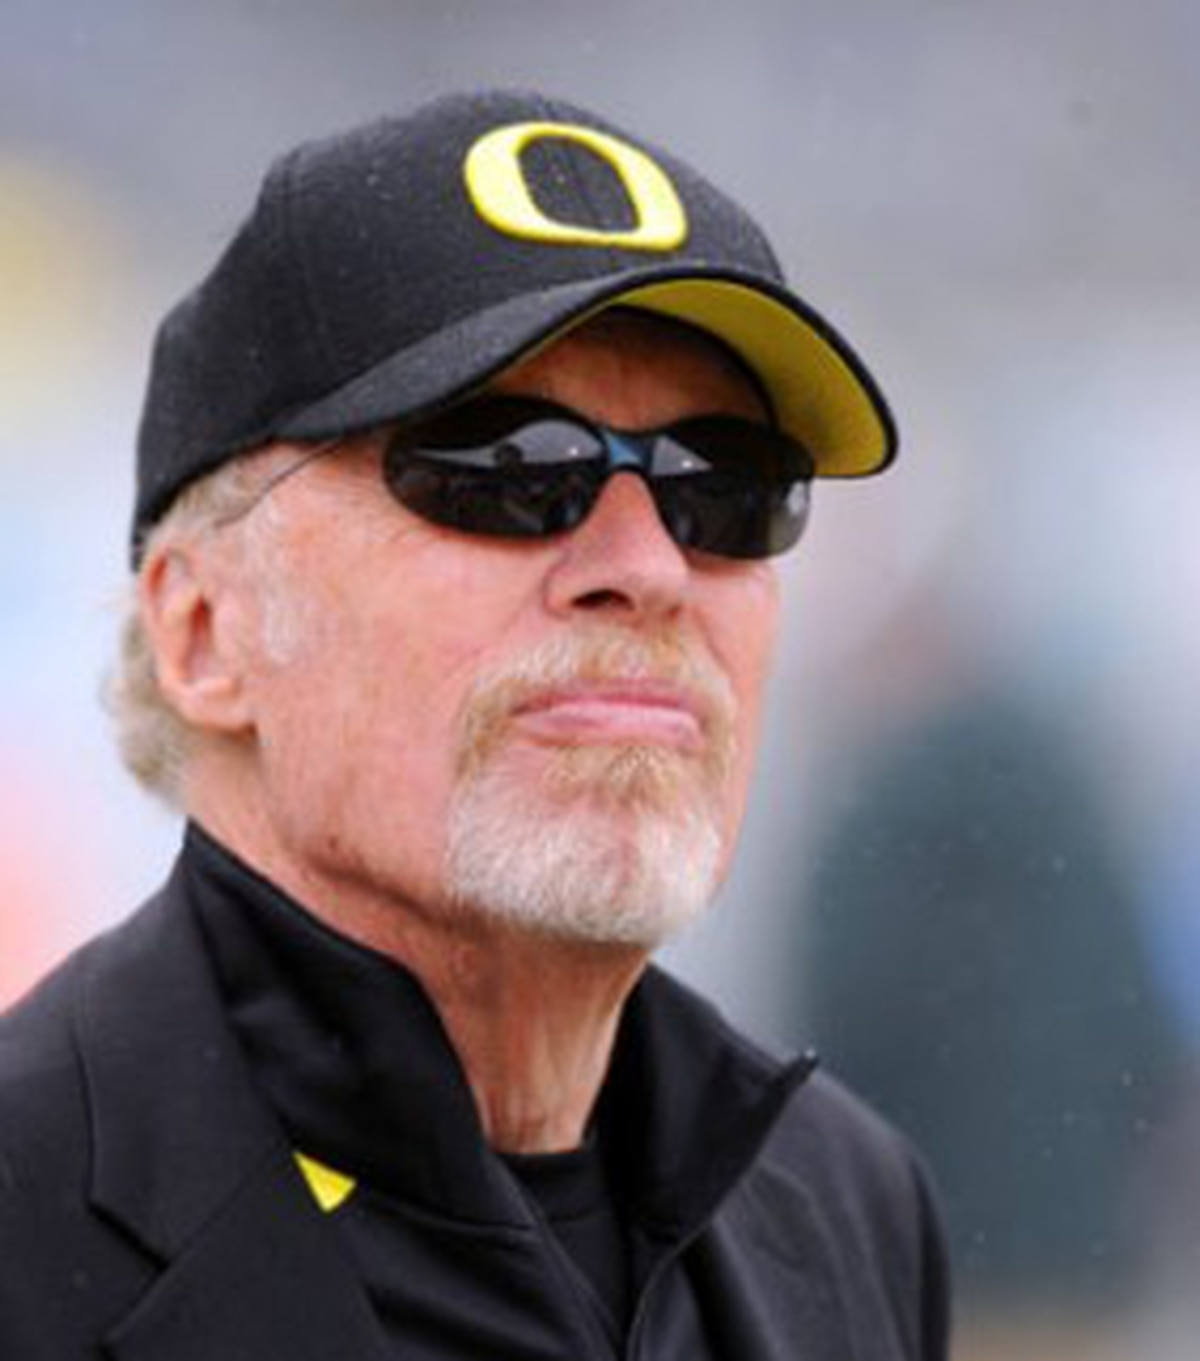 phil knight leadership style Leadershiptheory and behavior brinker's charismatic style of leadership also enables her to motivate others to support the cause through phil knight.